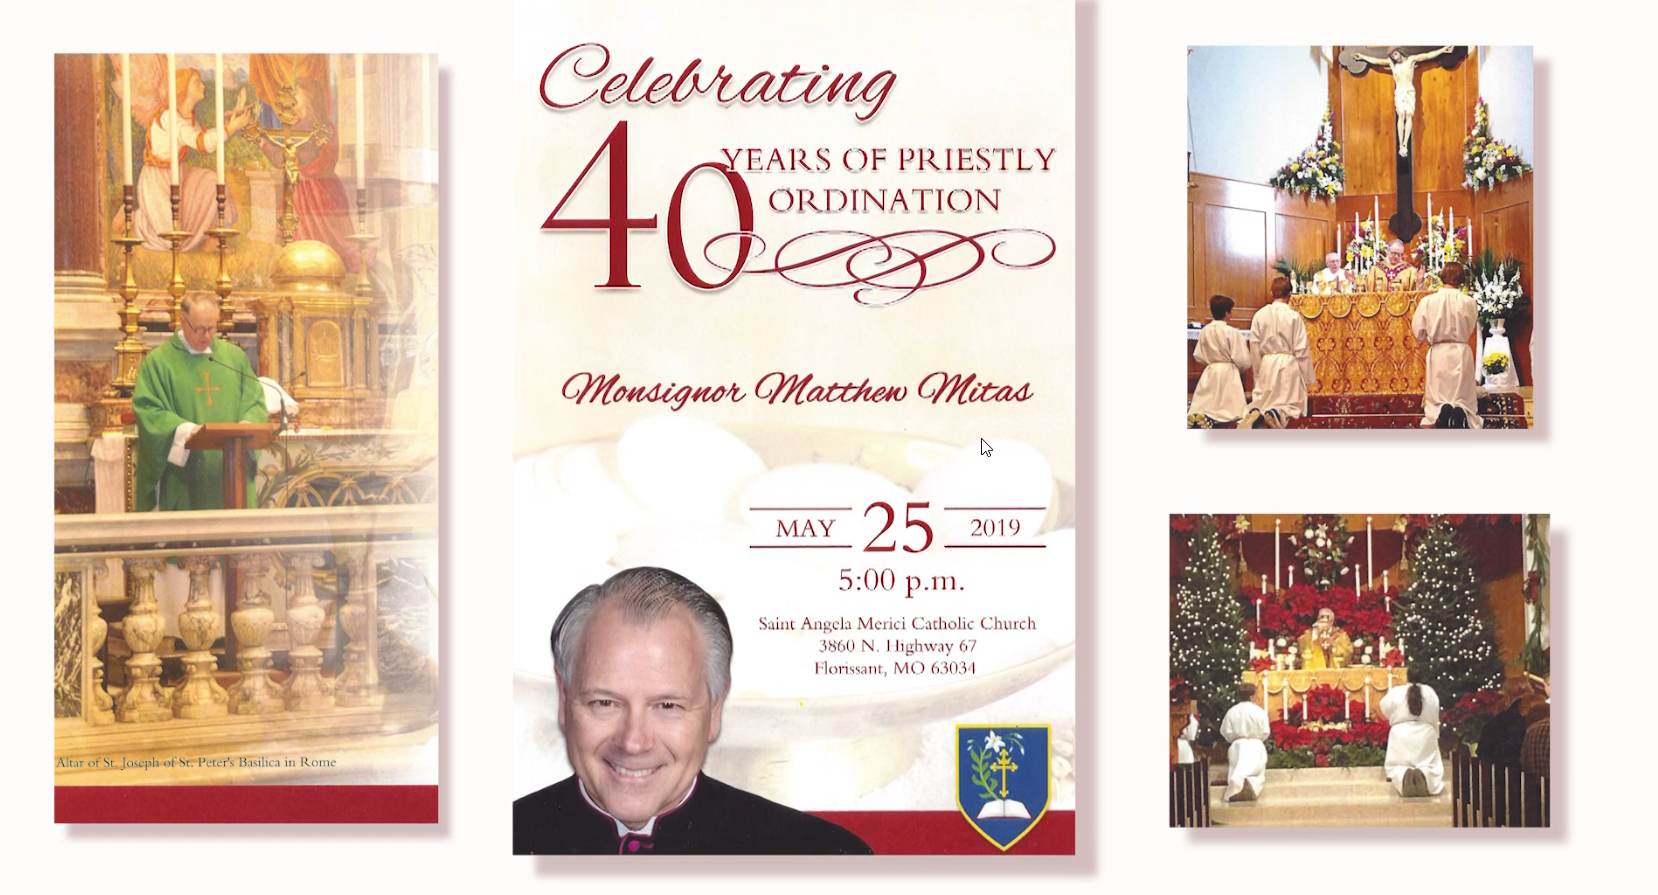 Celebrating 40 Years of Priestly Ordination